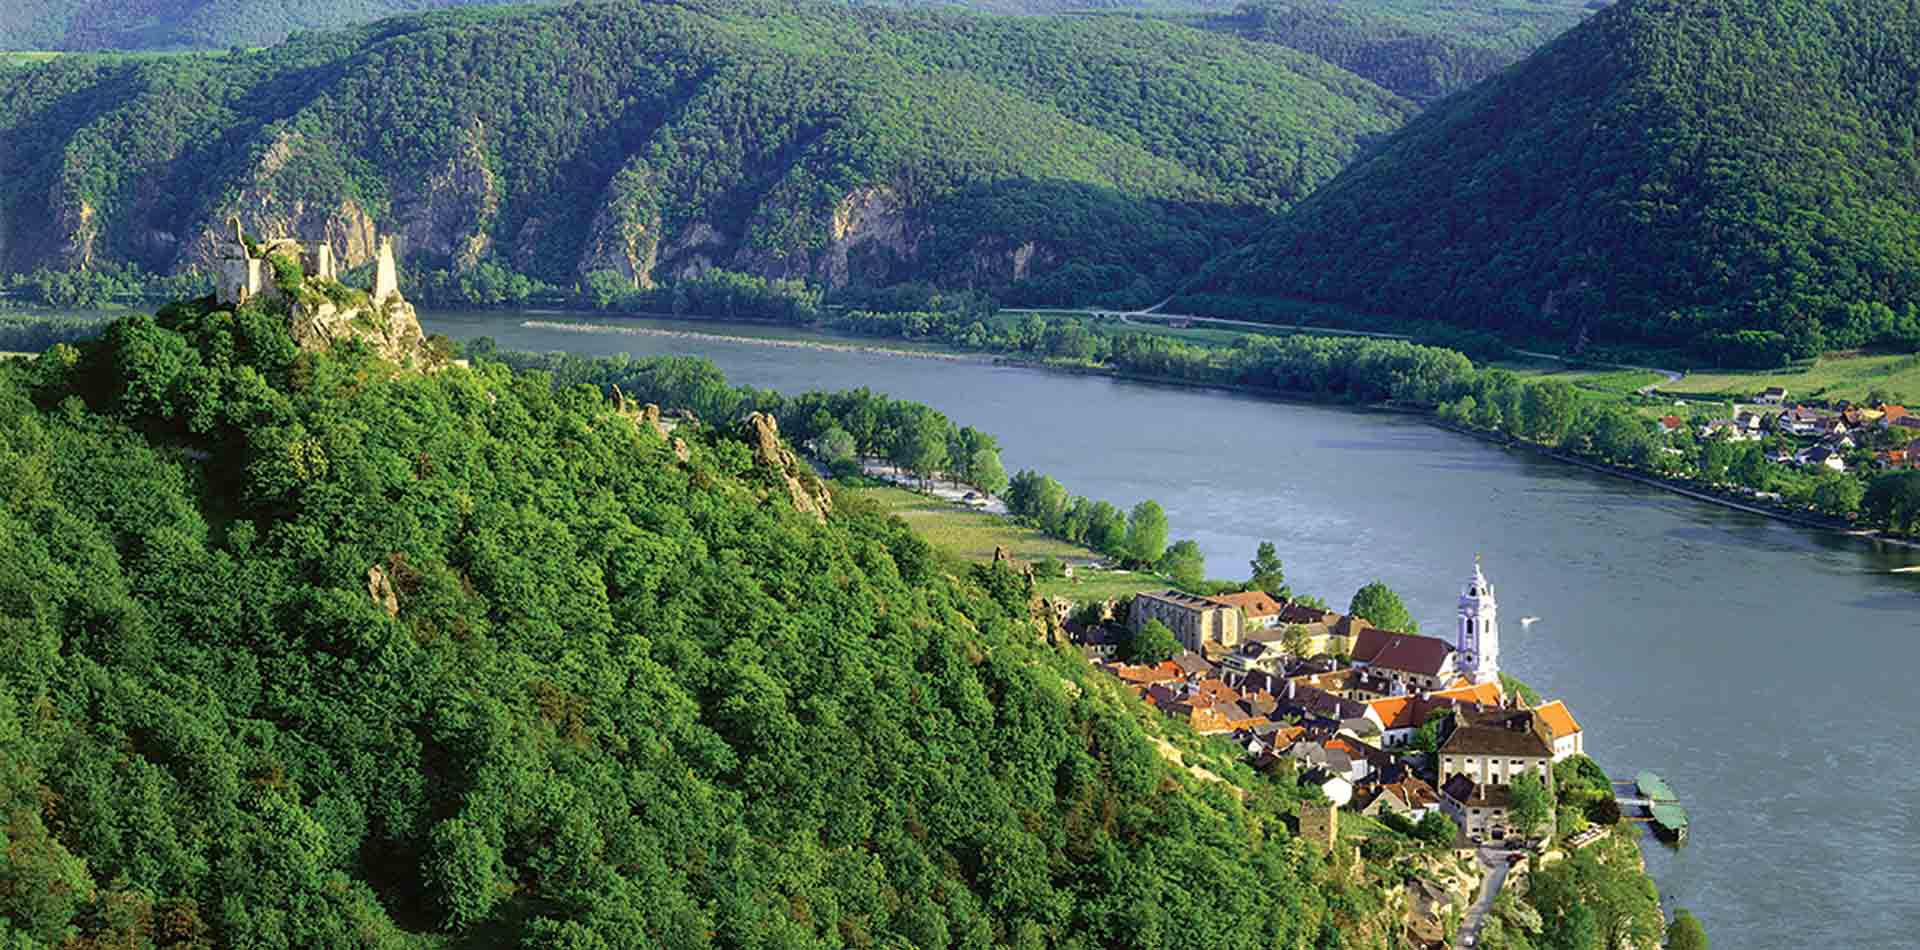 Europe Austria Durnstein village and castle on the Danube River beautiful greenery- luxury vacation destinations